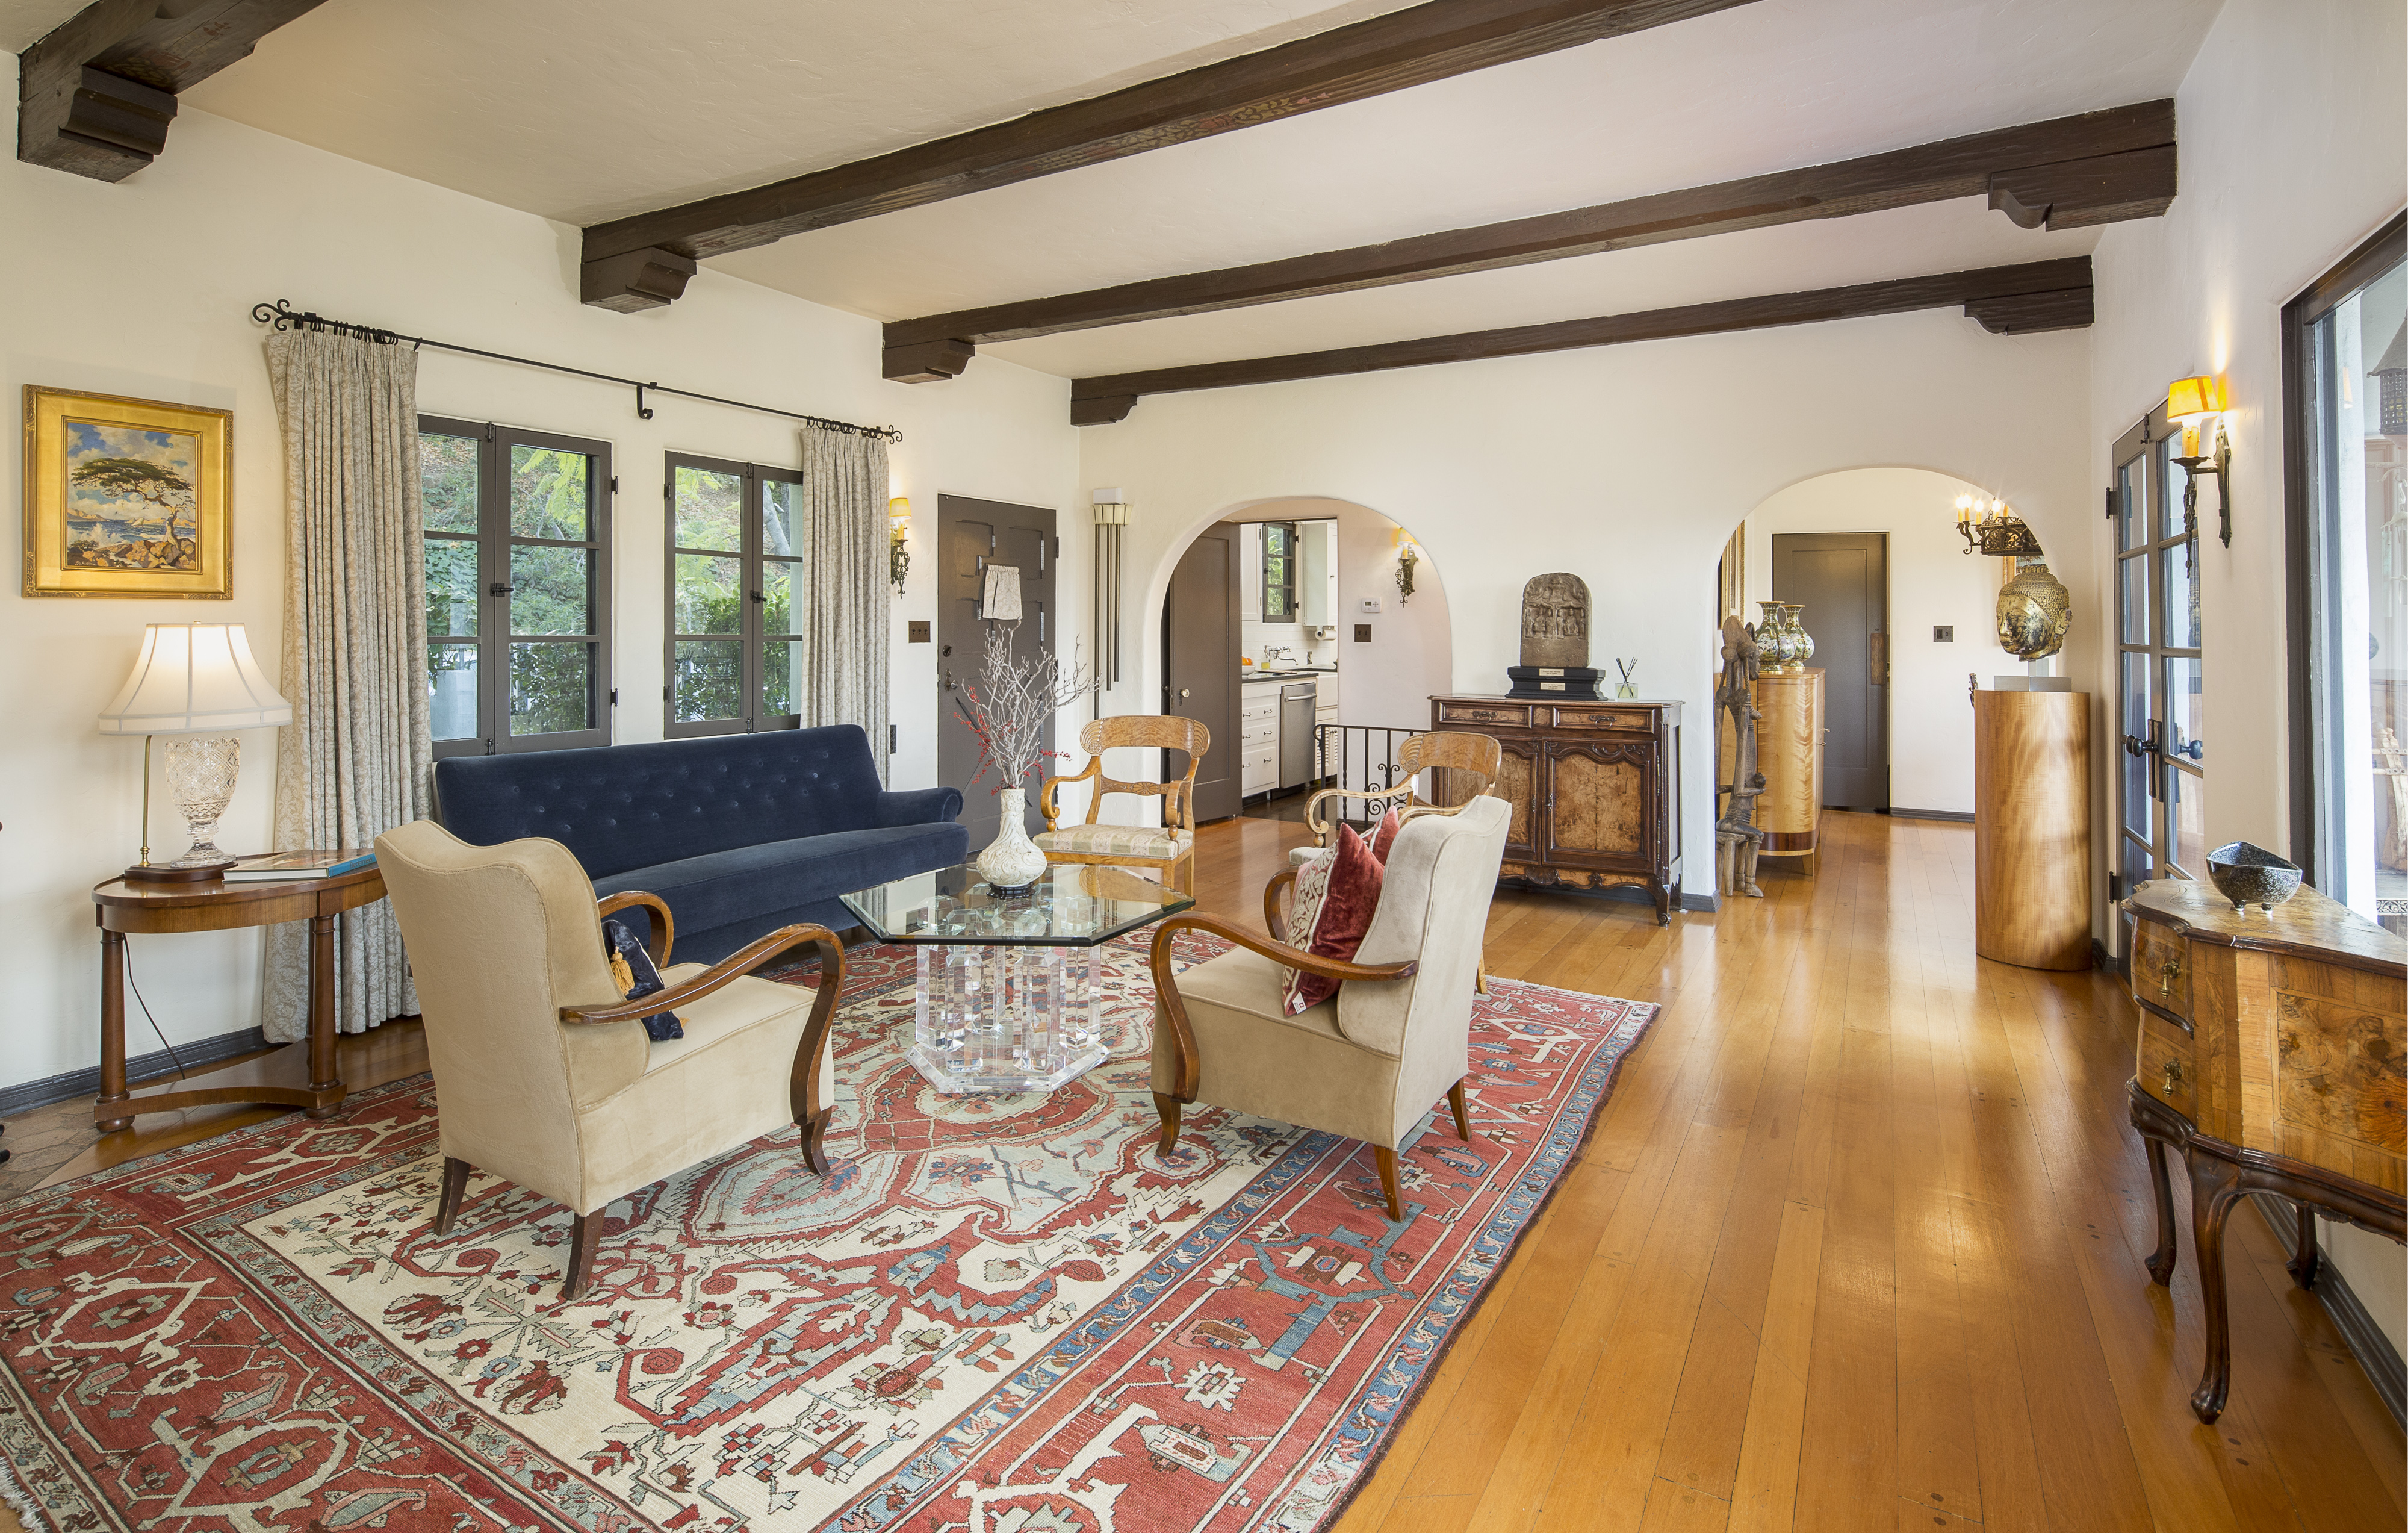 A room with many windows, lots of indirect sunlight, hardwood floors, and arched doorways.